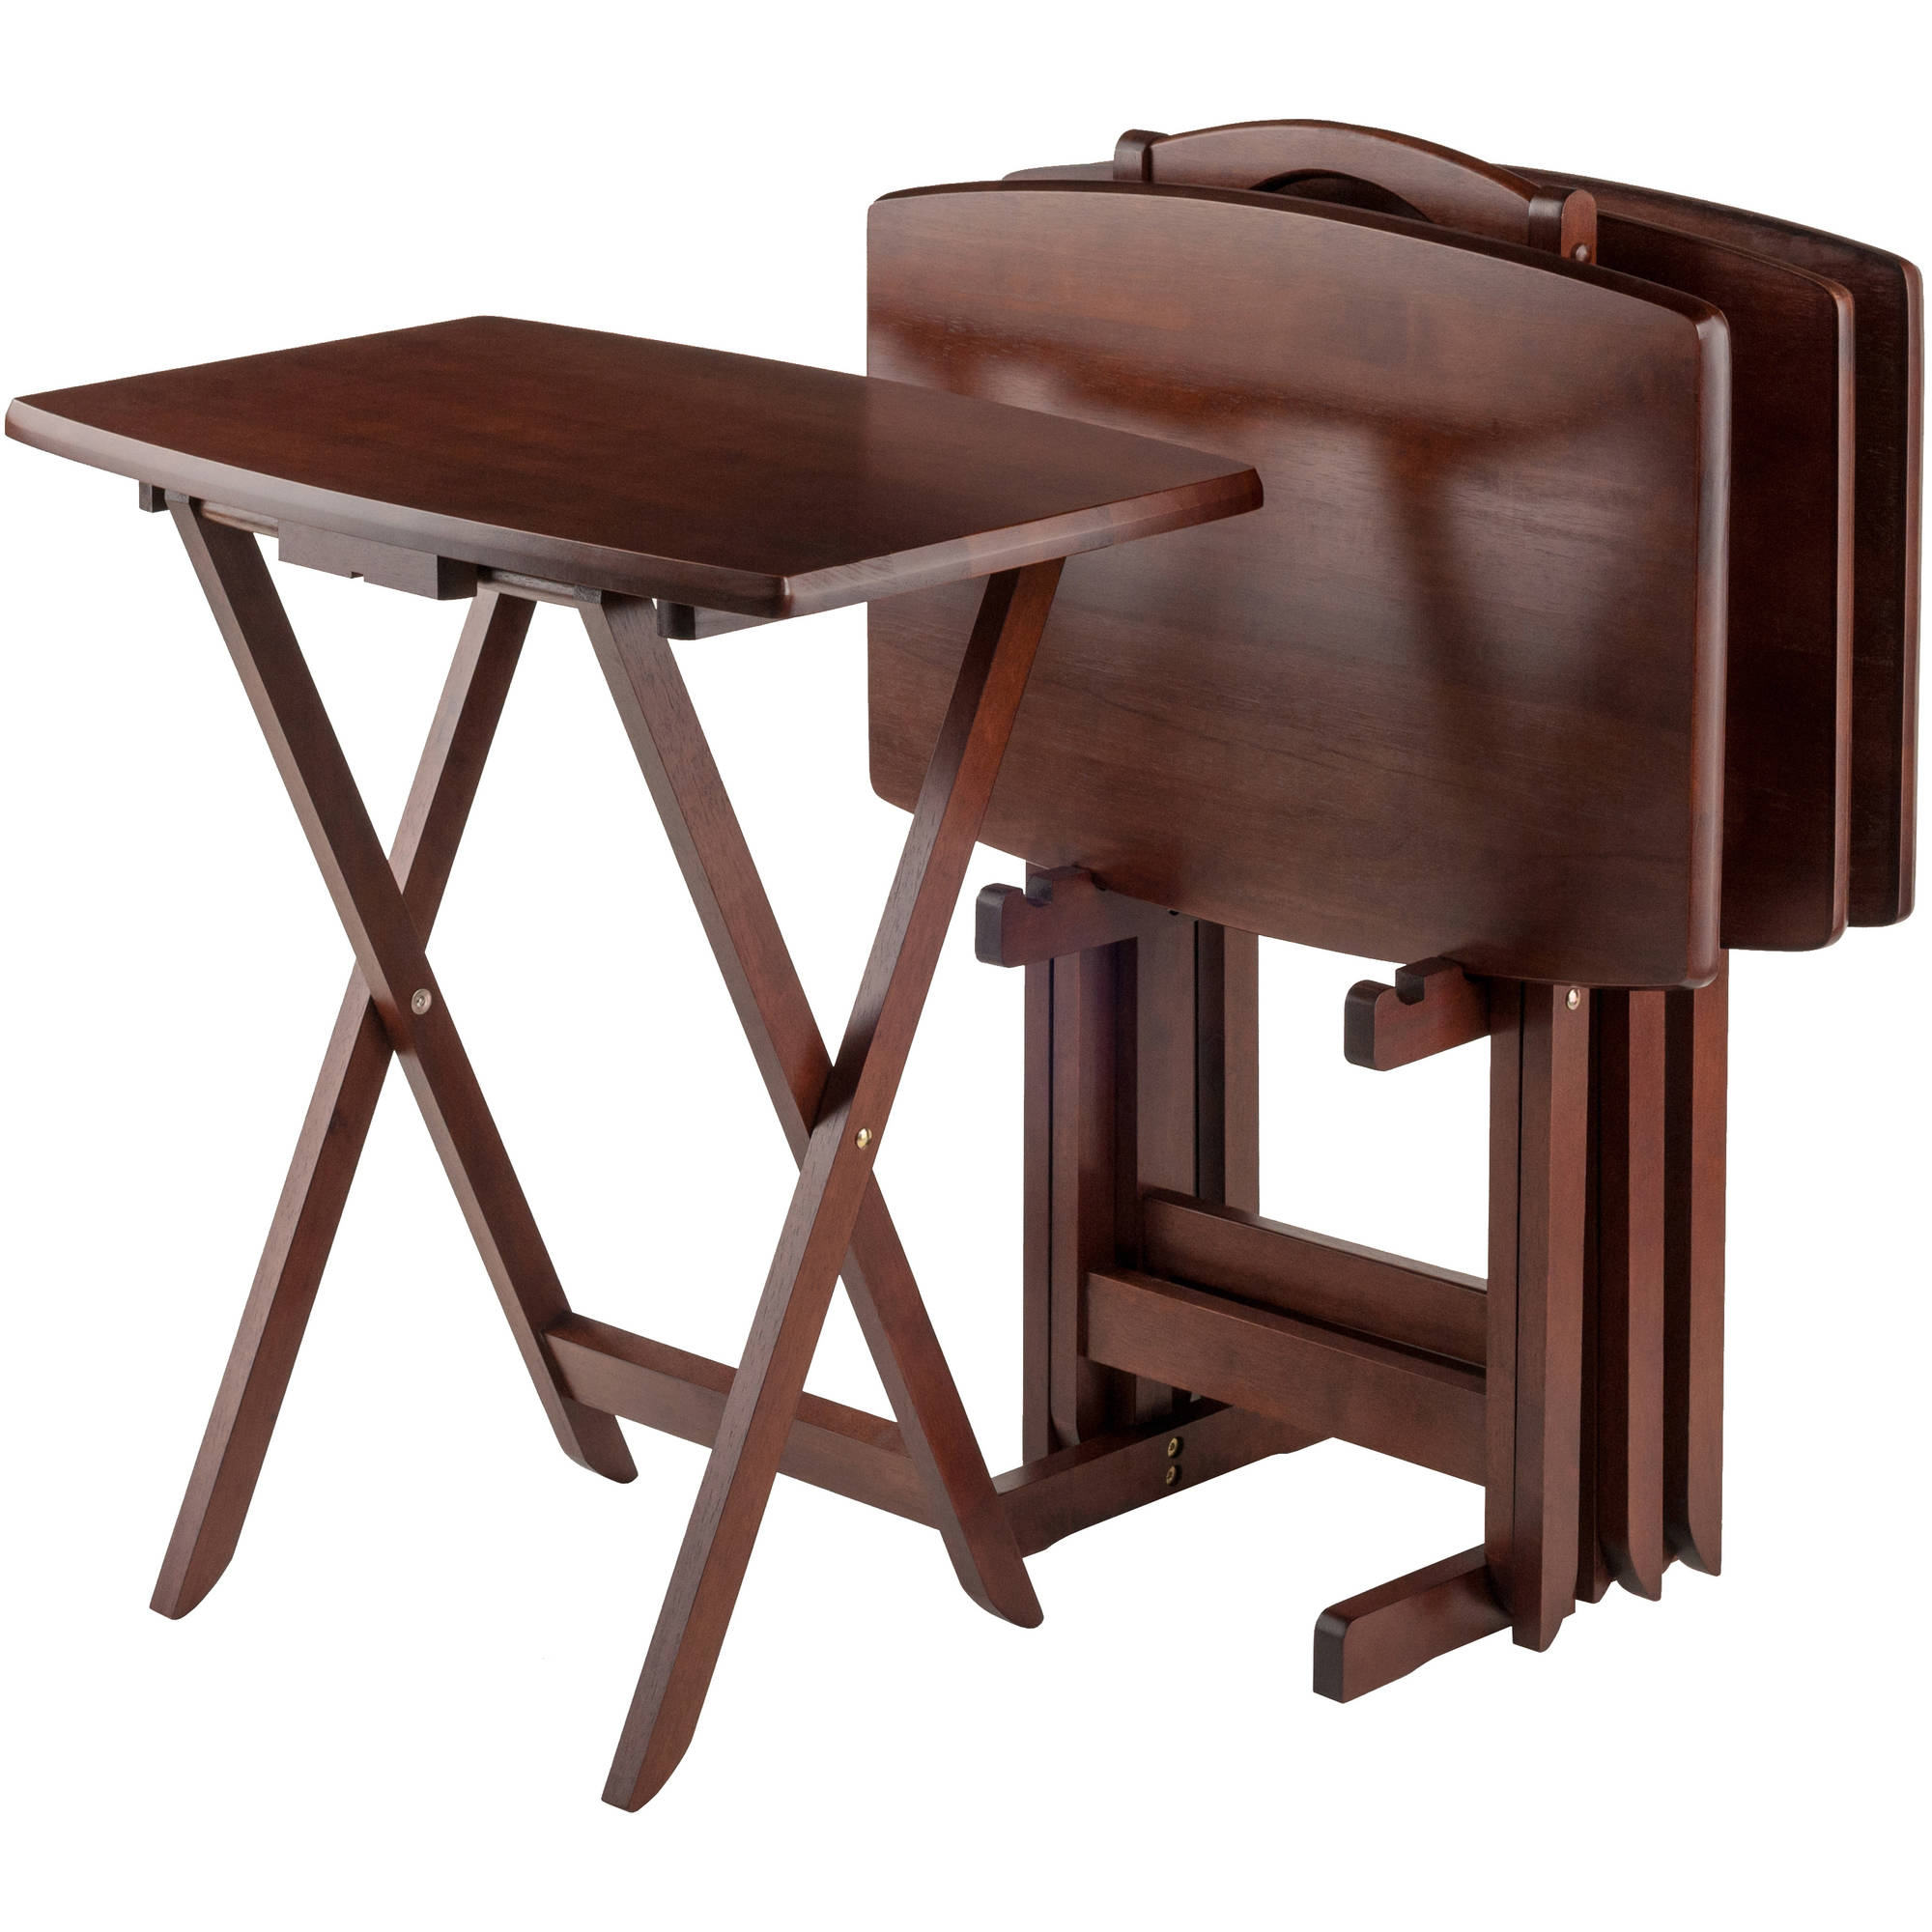 Set of 4 Portable Wood TV Table Folding Tray Desk Serving Furniture Walnut  New - Traveller Location